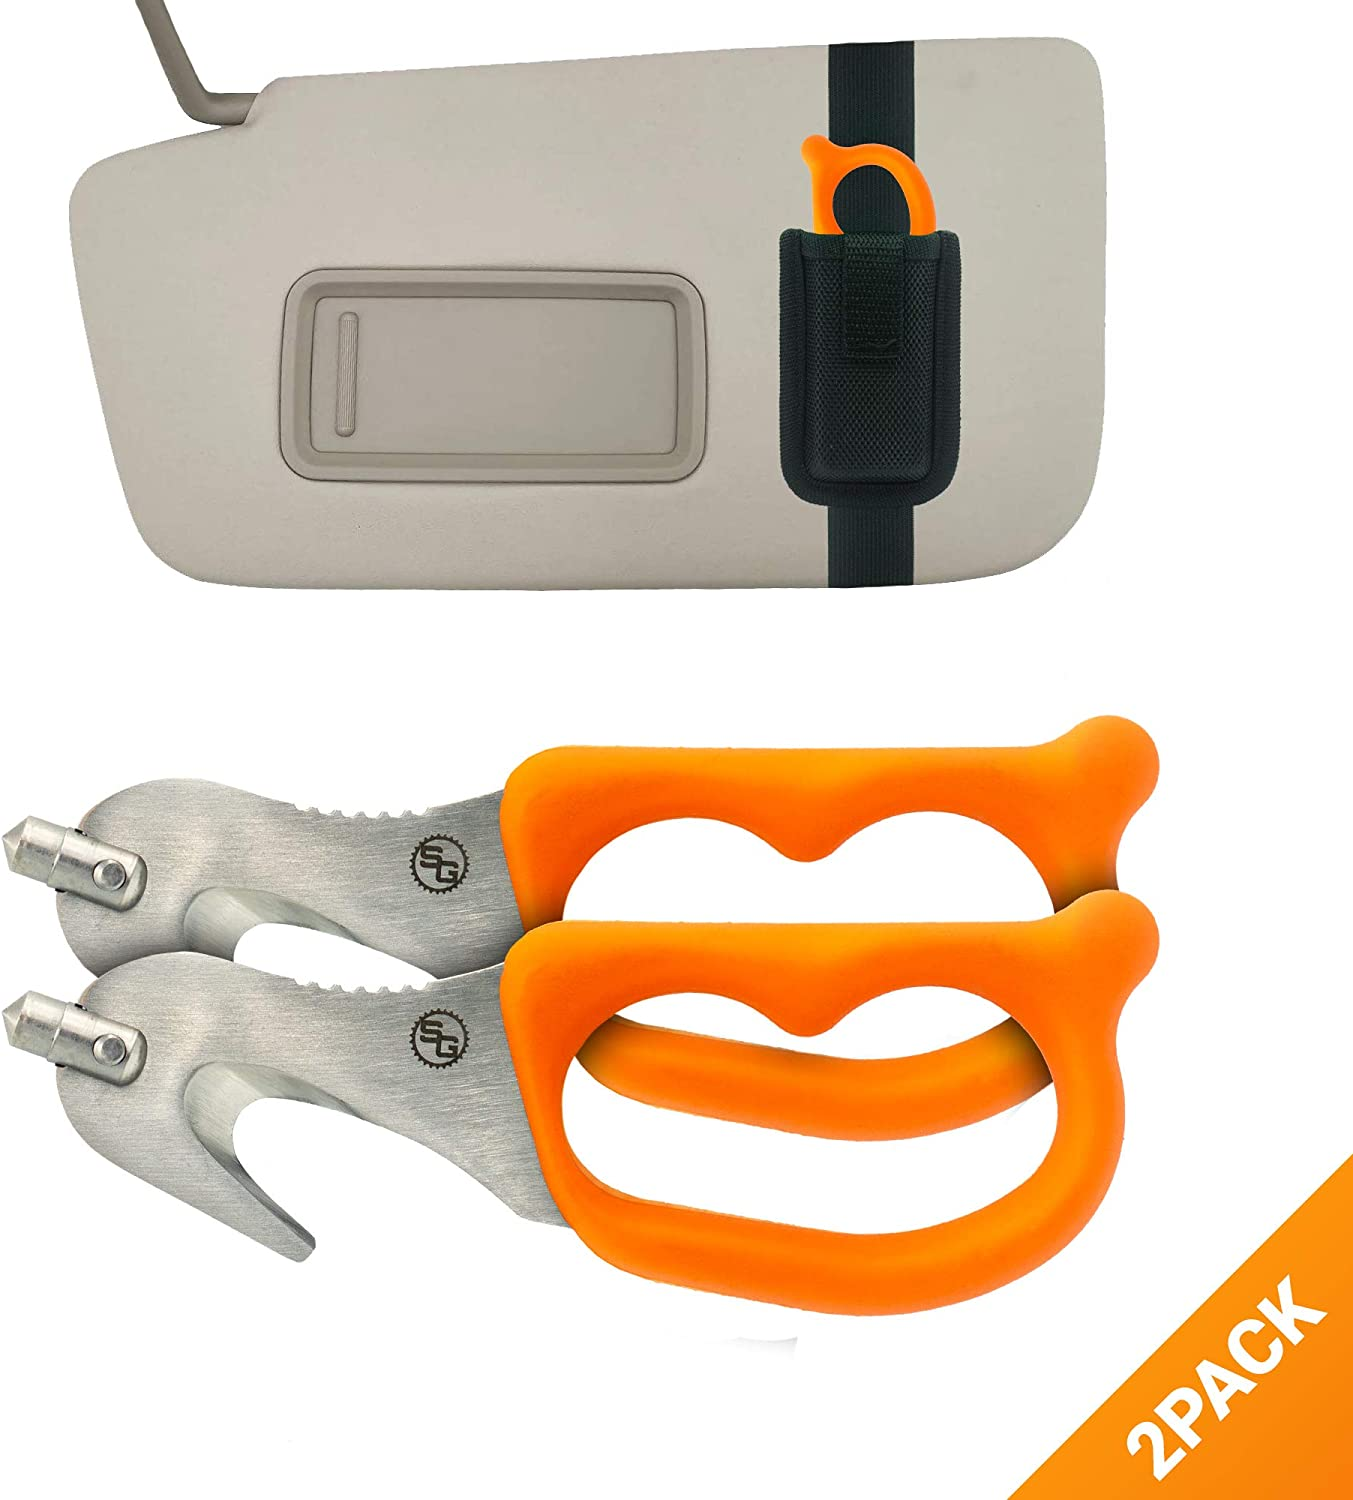 StatGear SuperVizor XT Auto Emergency Rescue Escape Tool - Seatbelt Cutter & Window Glass Breaker Hammer Survival - Mounts Right to Your Sun-Visor! Pack of 2: Automotive